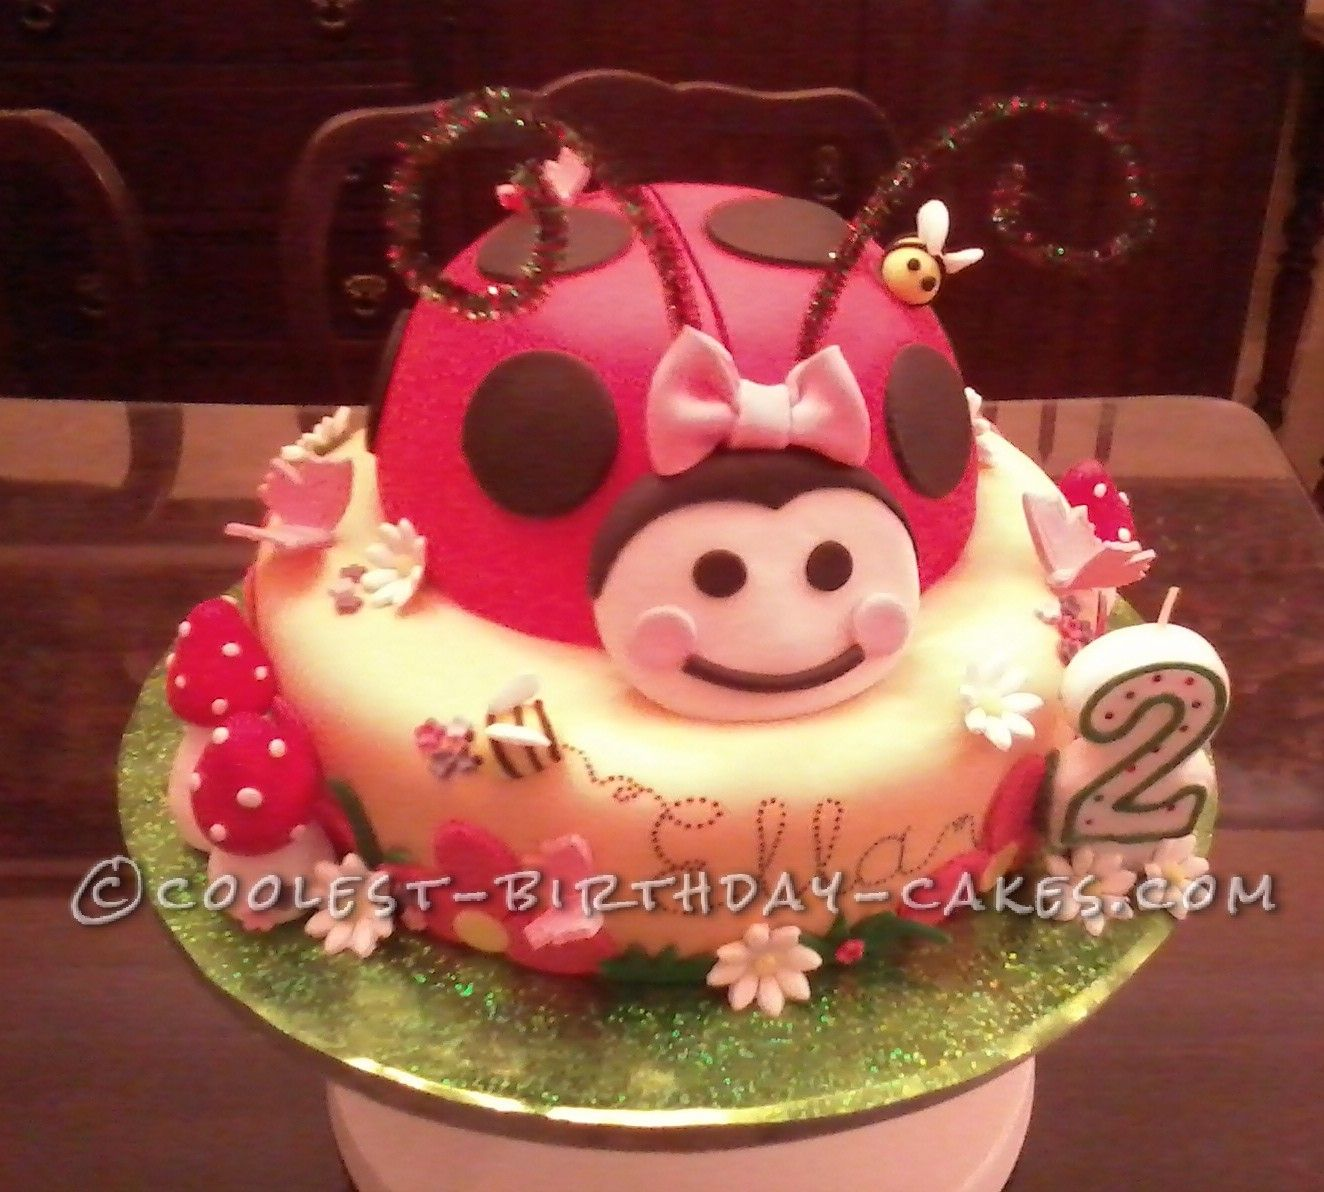 Coolest Ladybird Birthday Cake This website is the Pinterest of